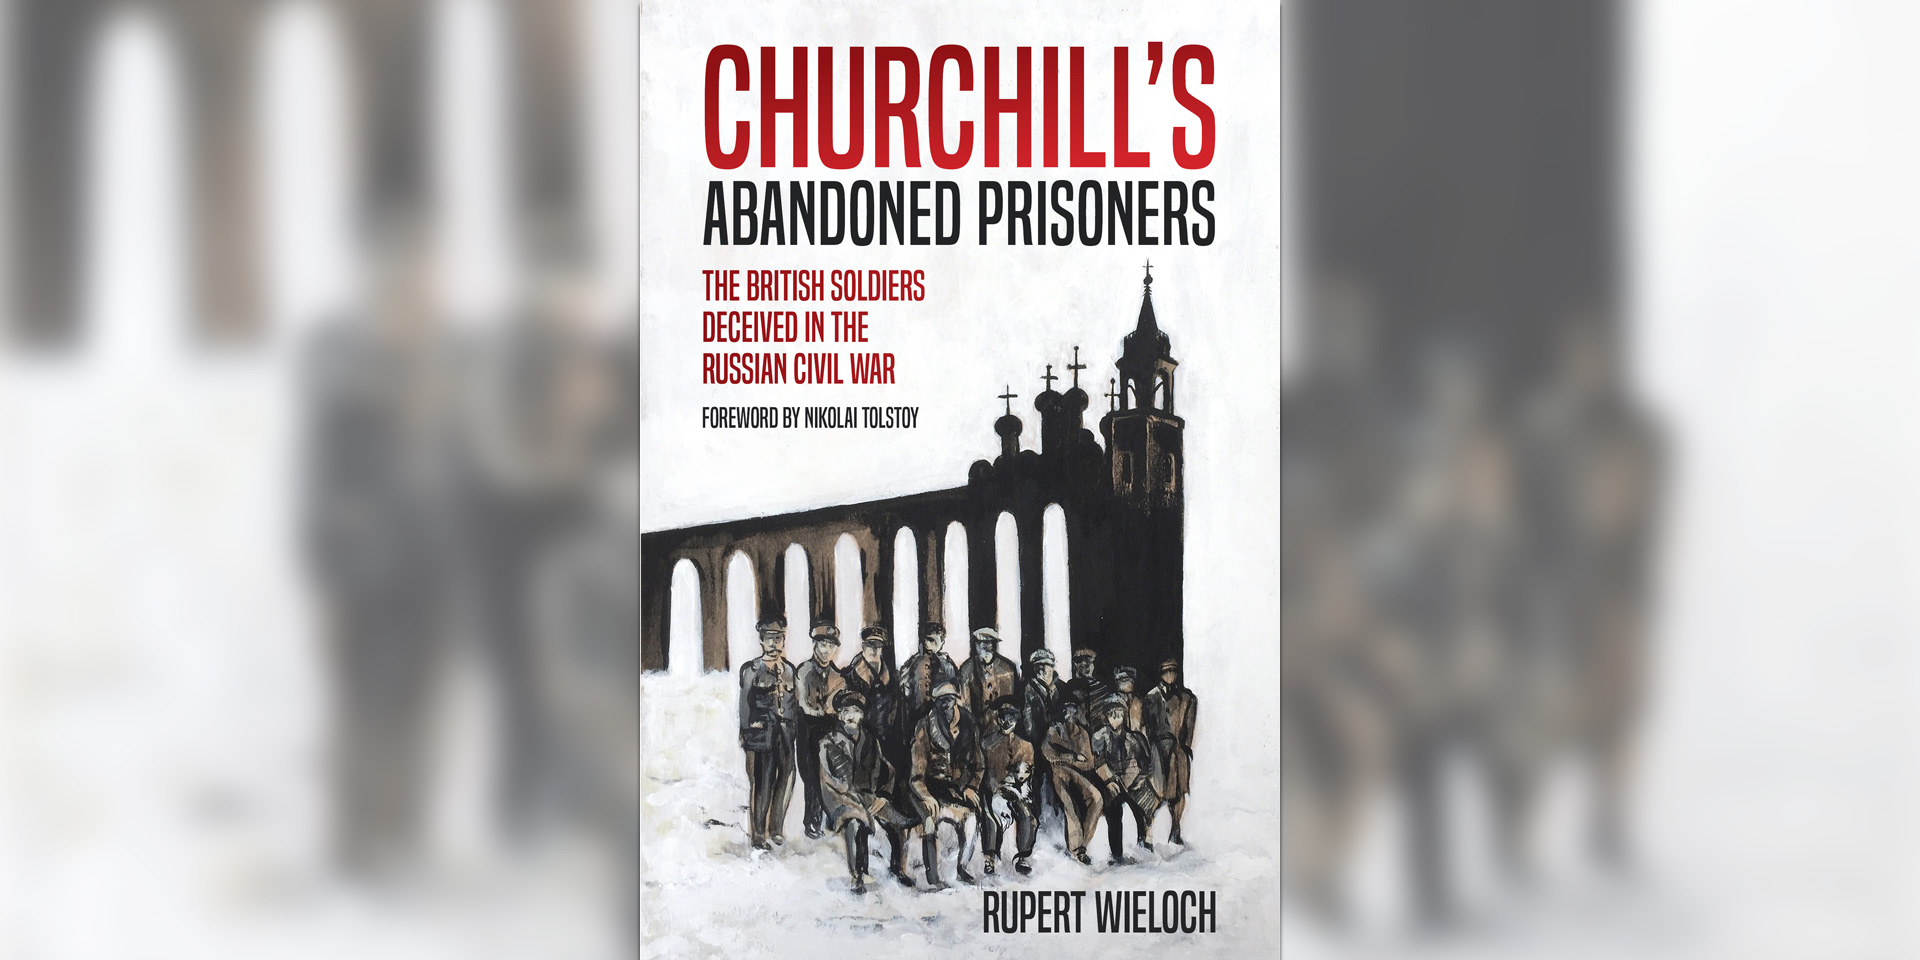 'Churchill's Abandoned Prisoners' book cover